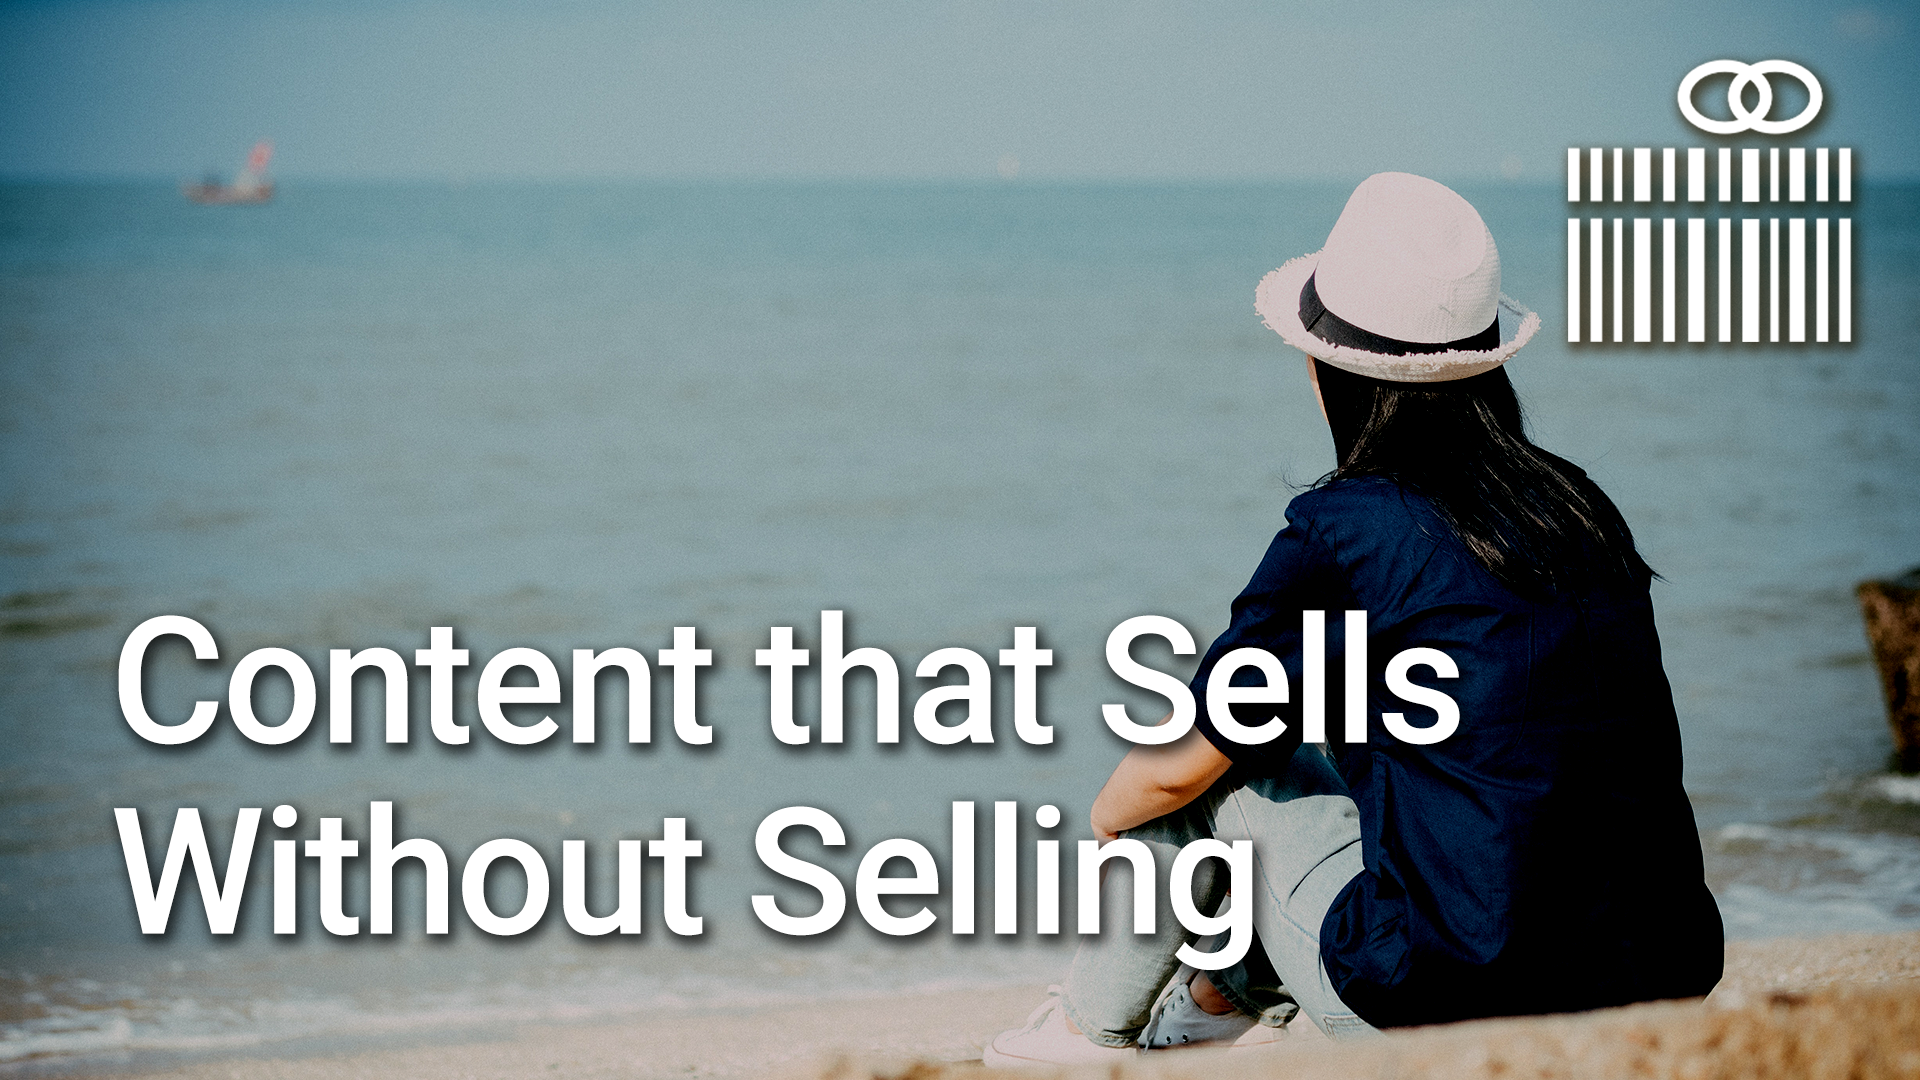 Why It's Important to Provide Content that Isn't Selling to Increase Sales